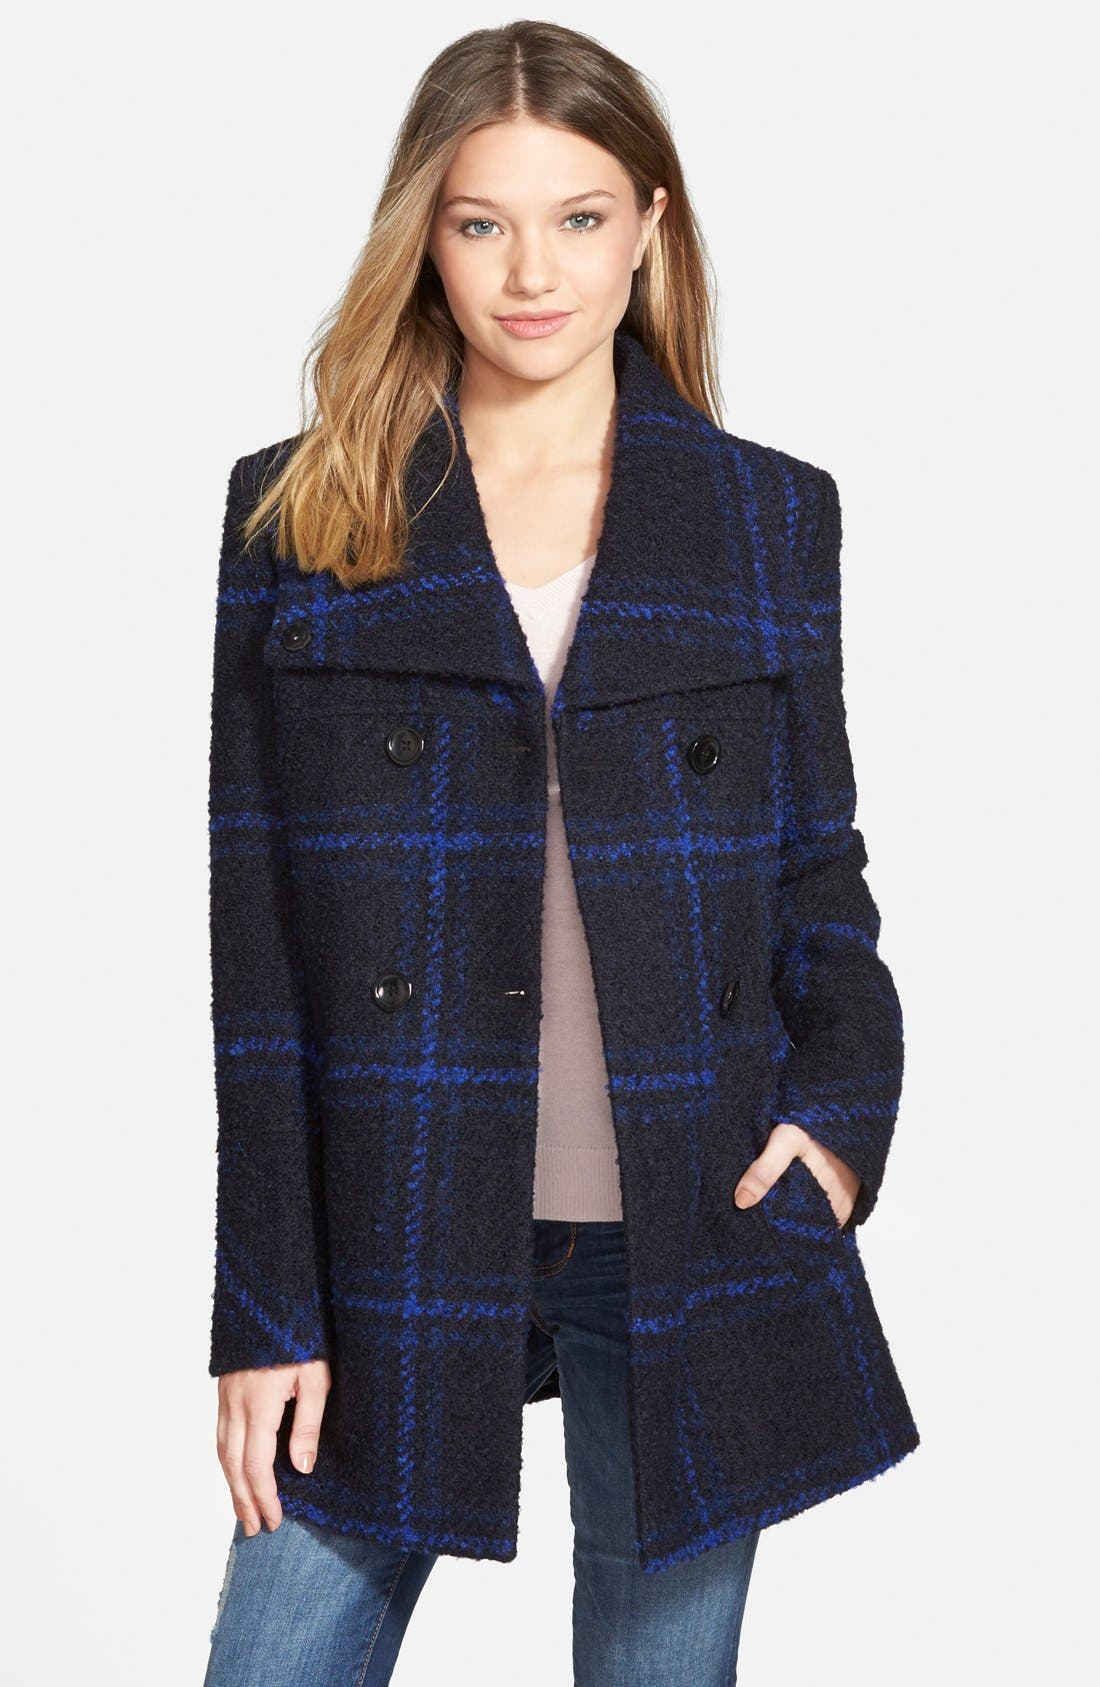 Main Image - Maralyn & Me Plaid A-Line Jacket  (Online Only)